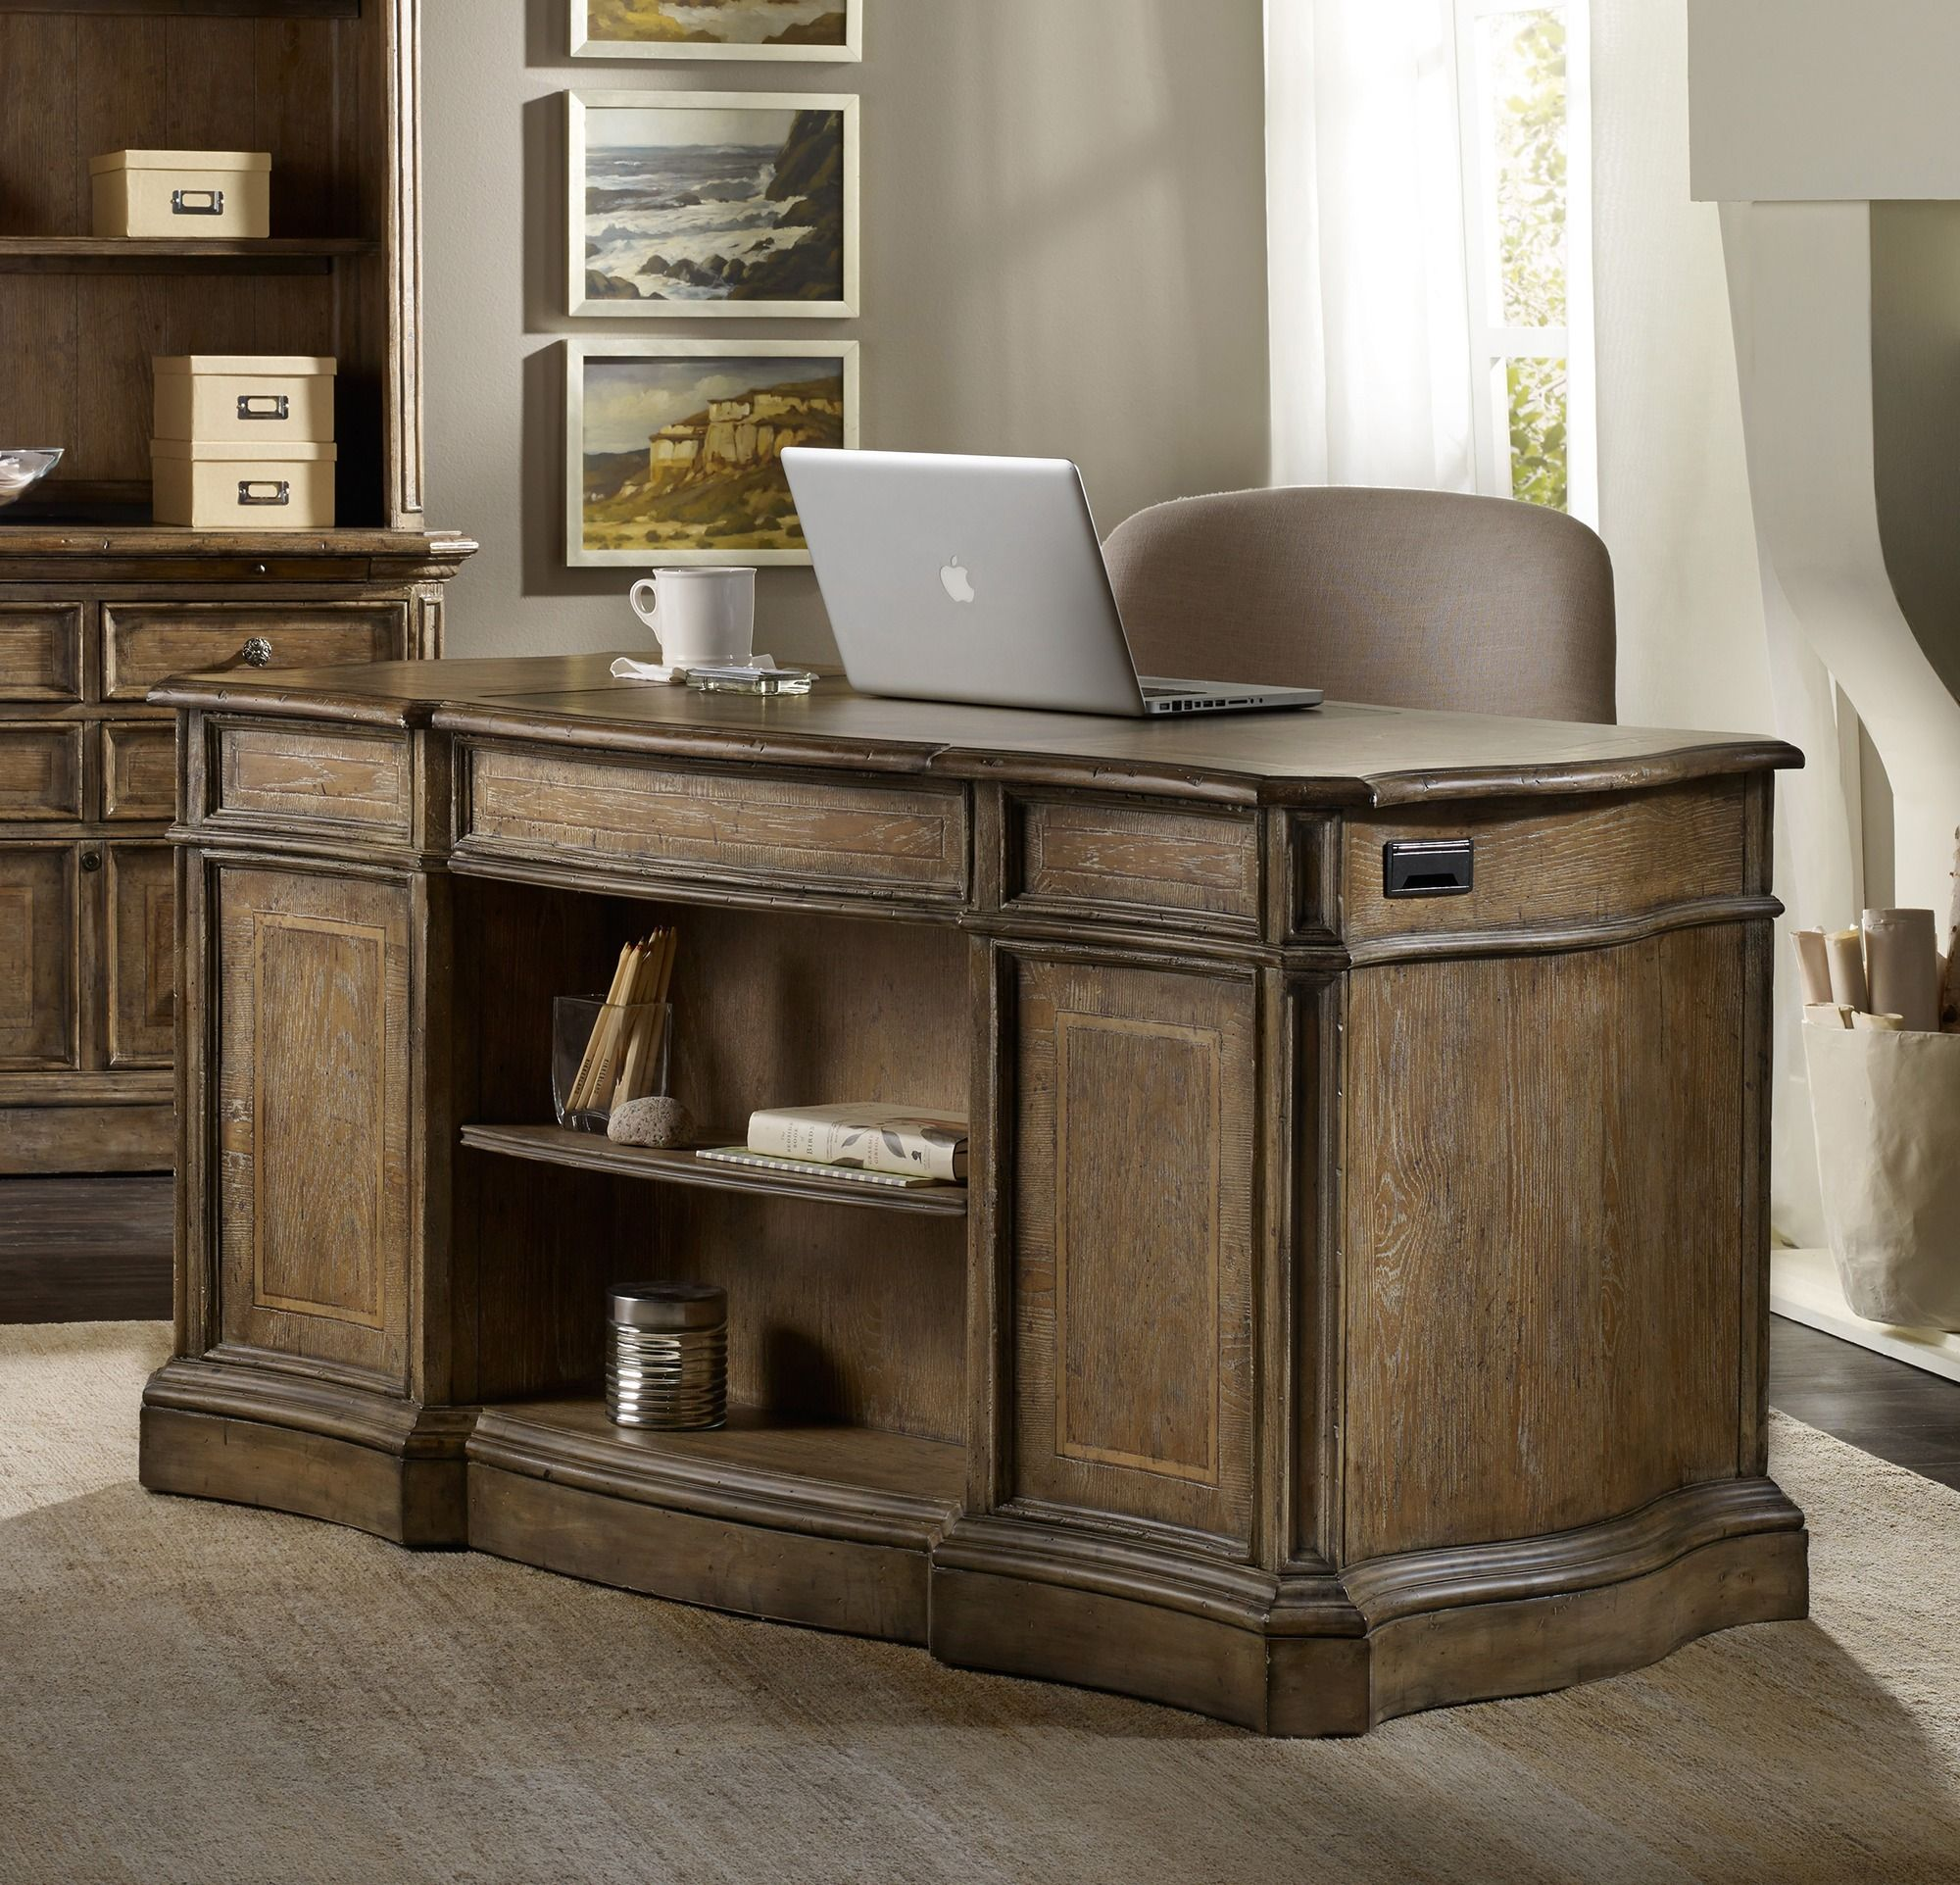 Hooker Office Furniture Intended Solana Knee Hole Desk By Hooker Furniture Home Gallery Stores